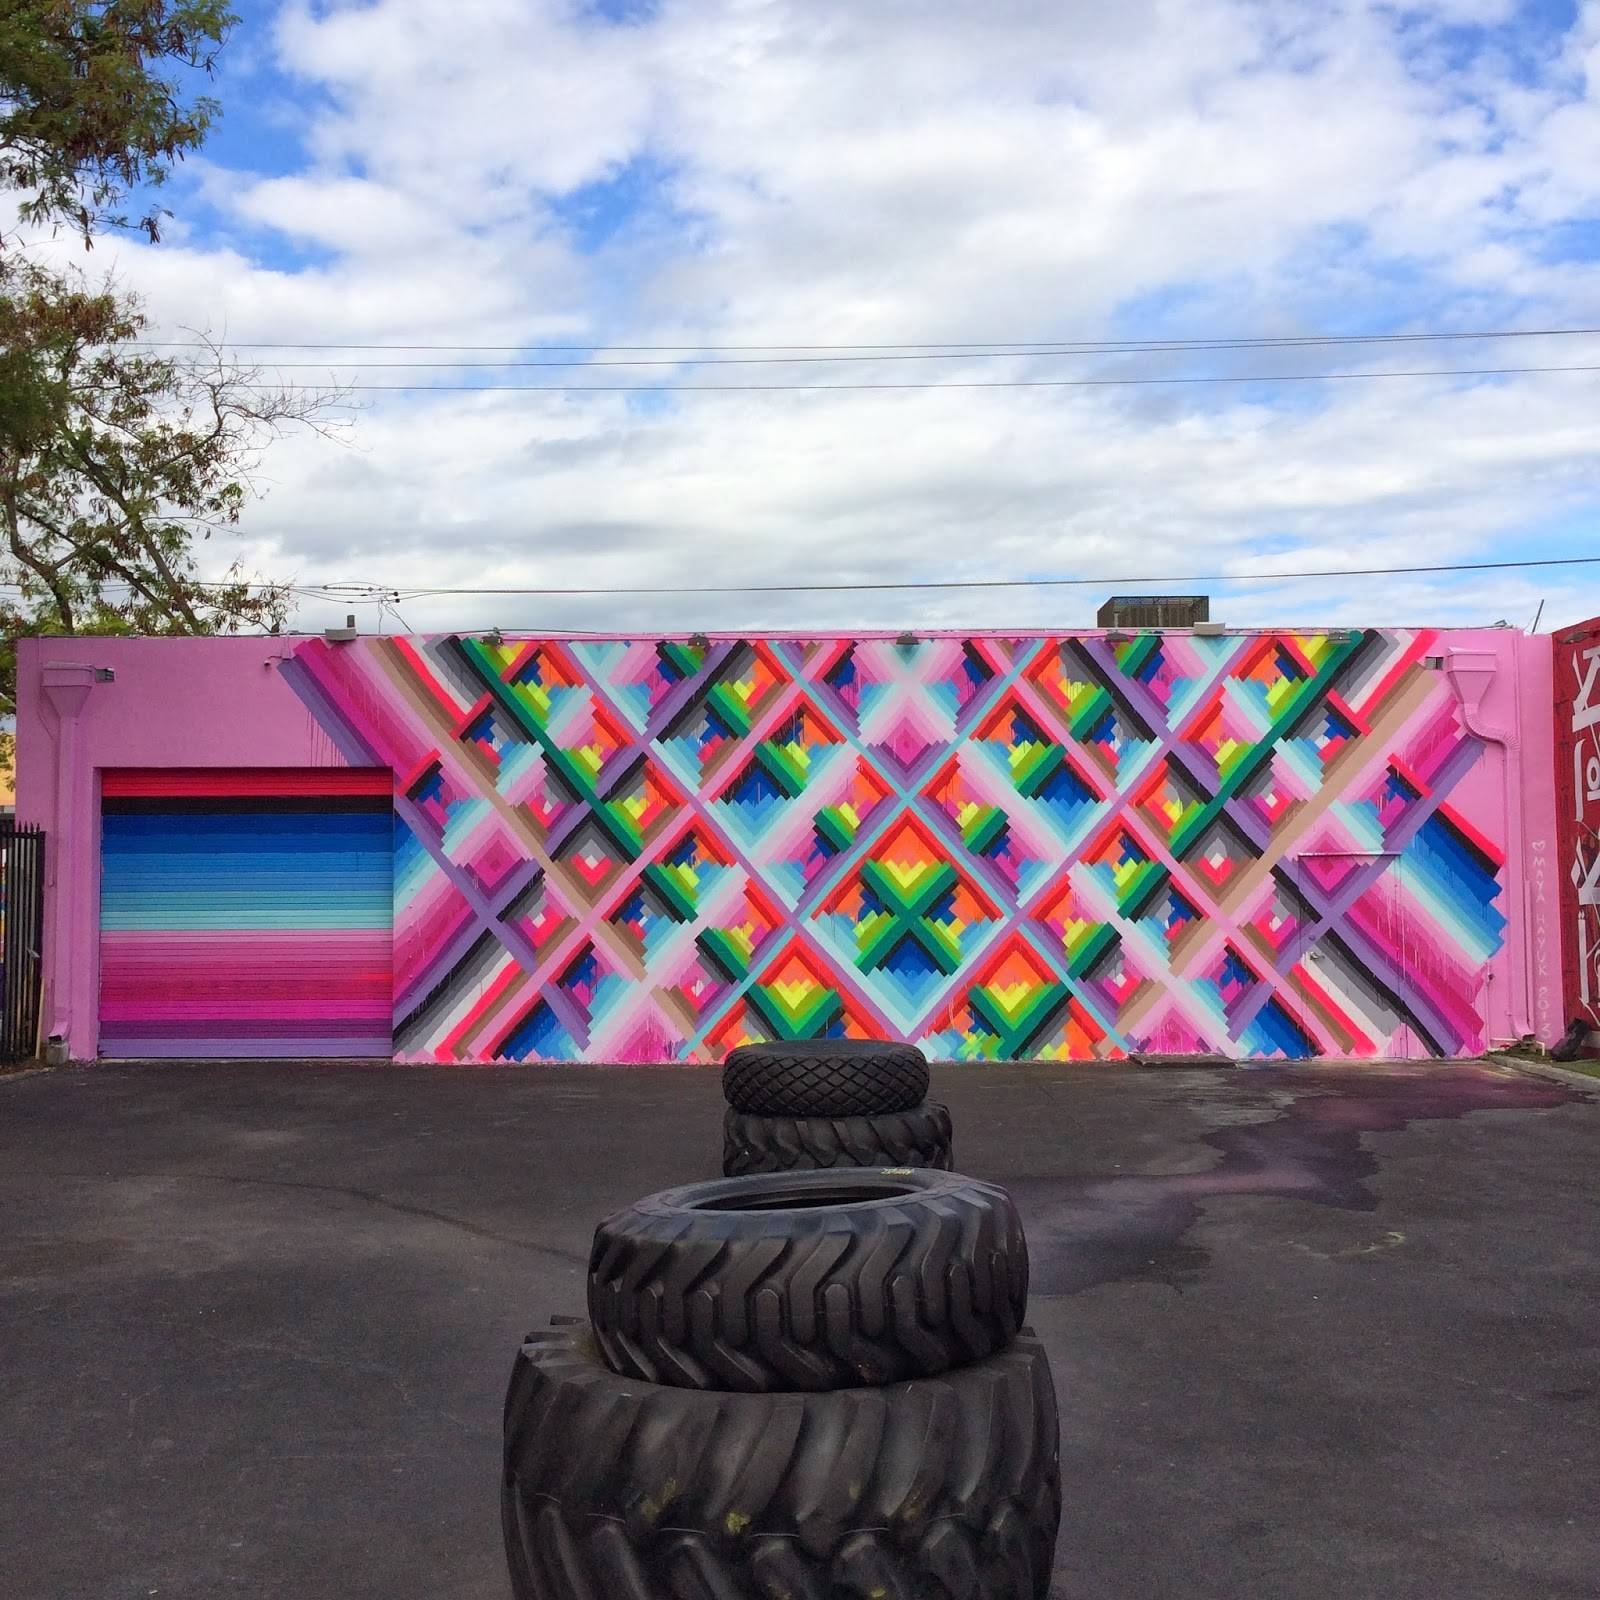 Maya Hayuk New Mural For Art Basel '13 – Wynwood Walls, Miami In Best And Newest Miami Wall Art (View 6 of 20)